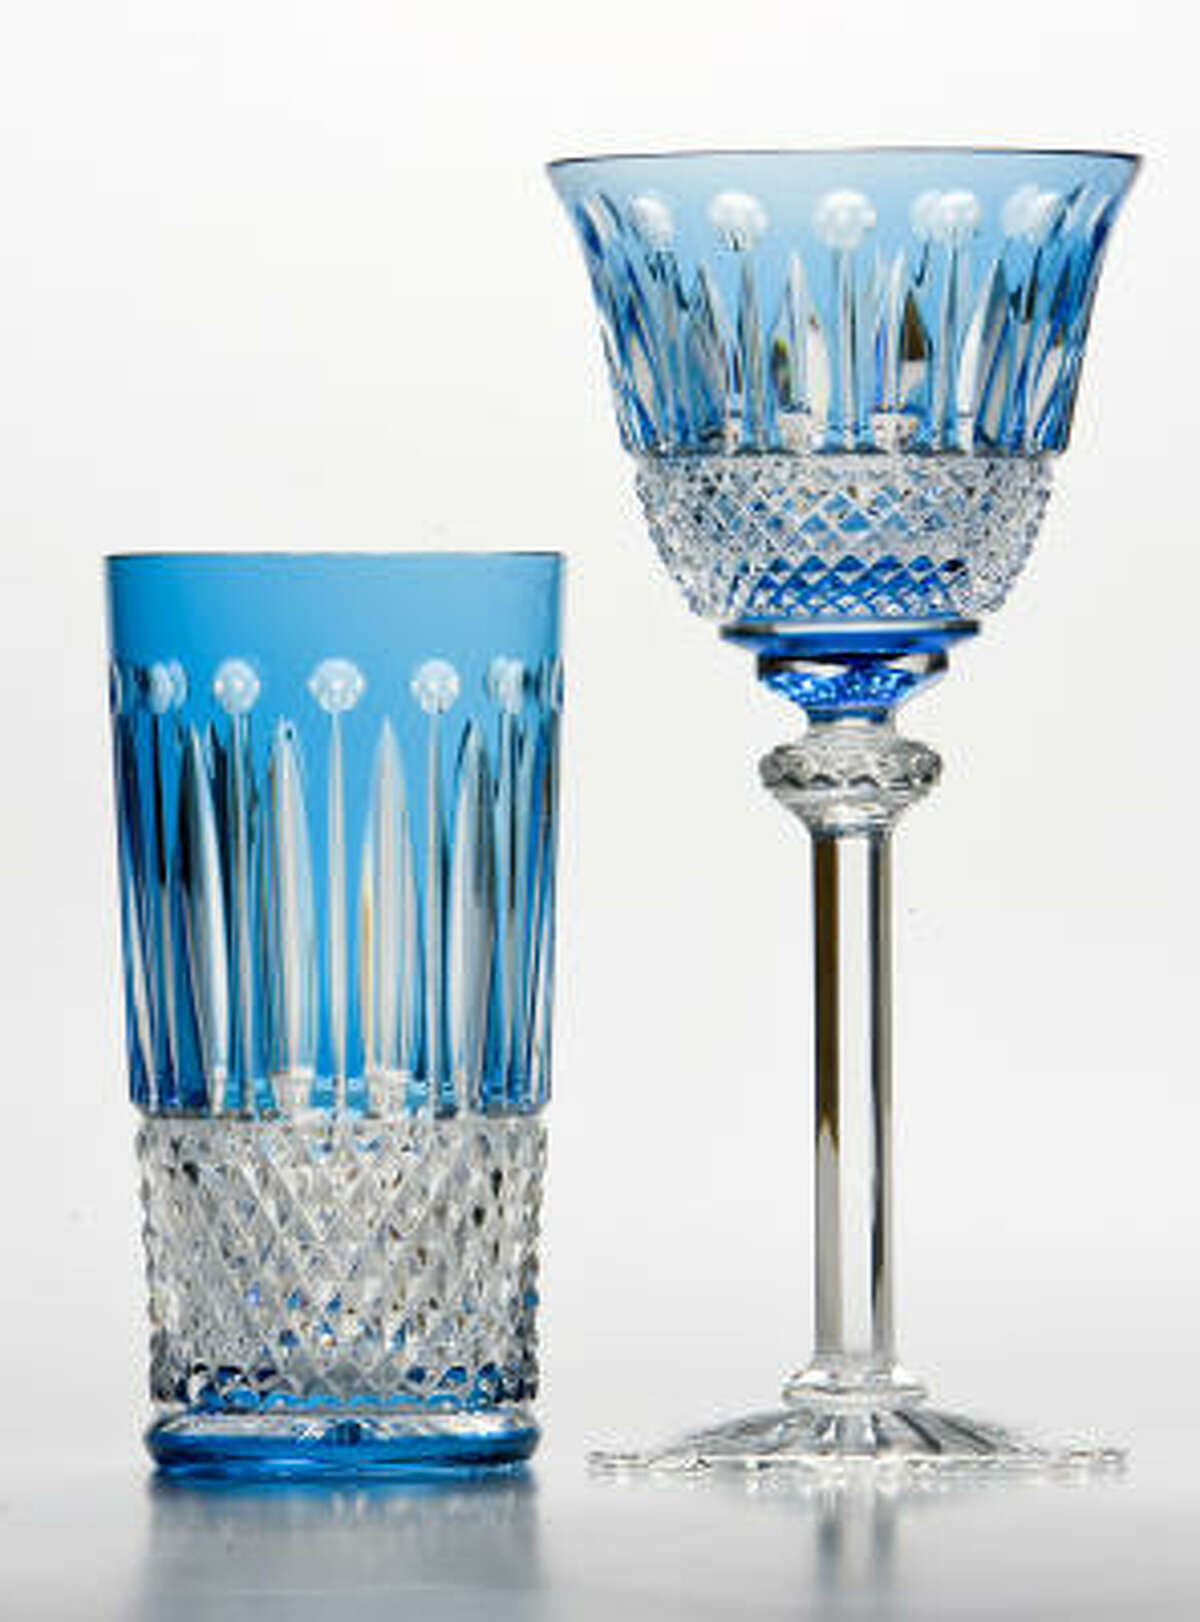 Tommy Tall tumbler, $480, and Tommy wine glass, $490, by Saint Louis at Kuhl-Linscomb.